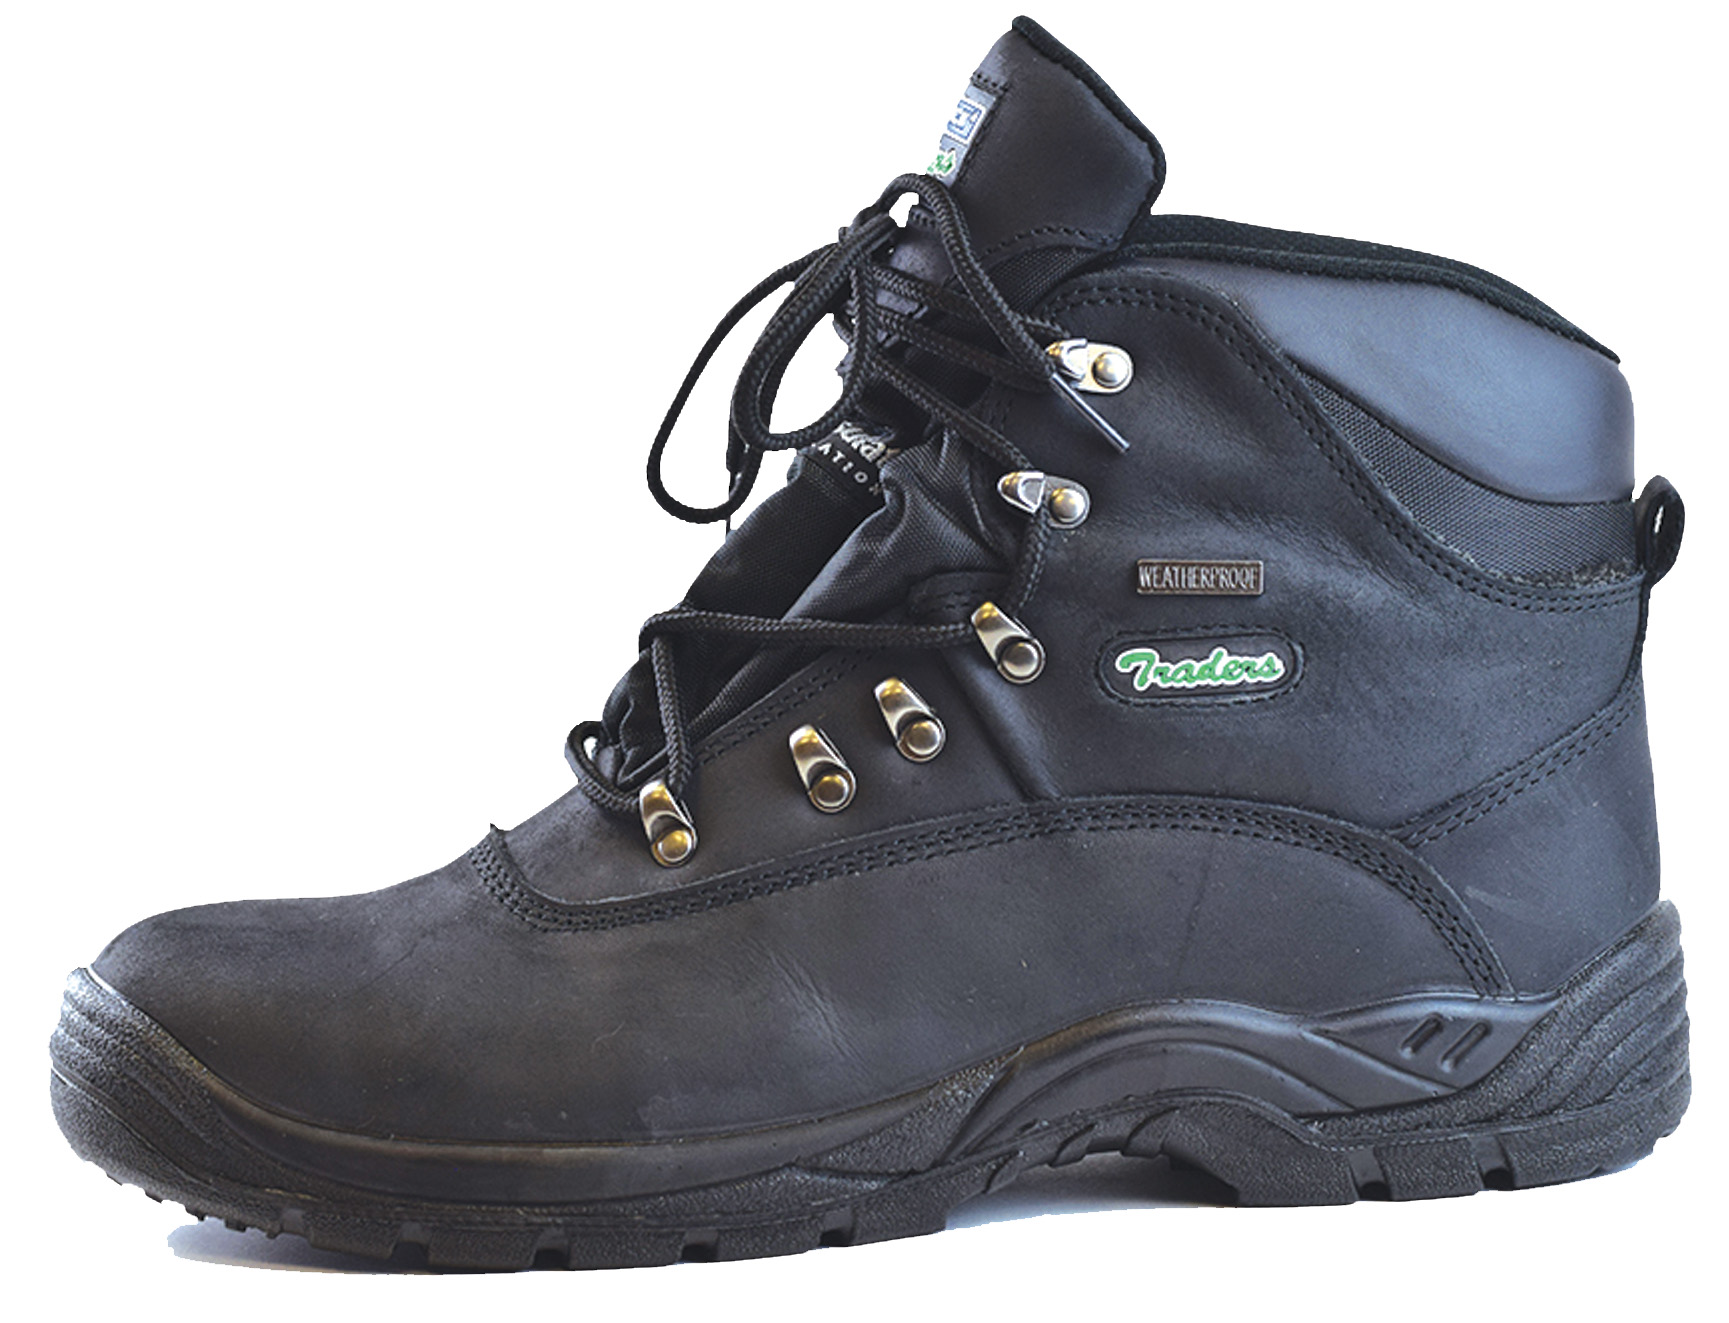 Steel stylish toe cap shoes photo